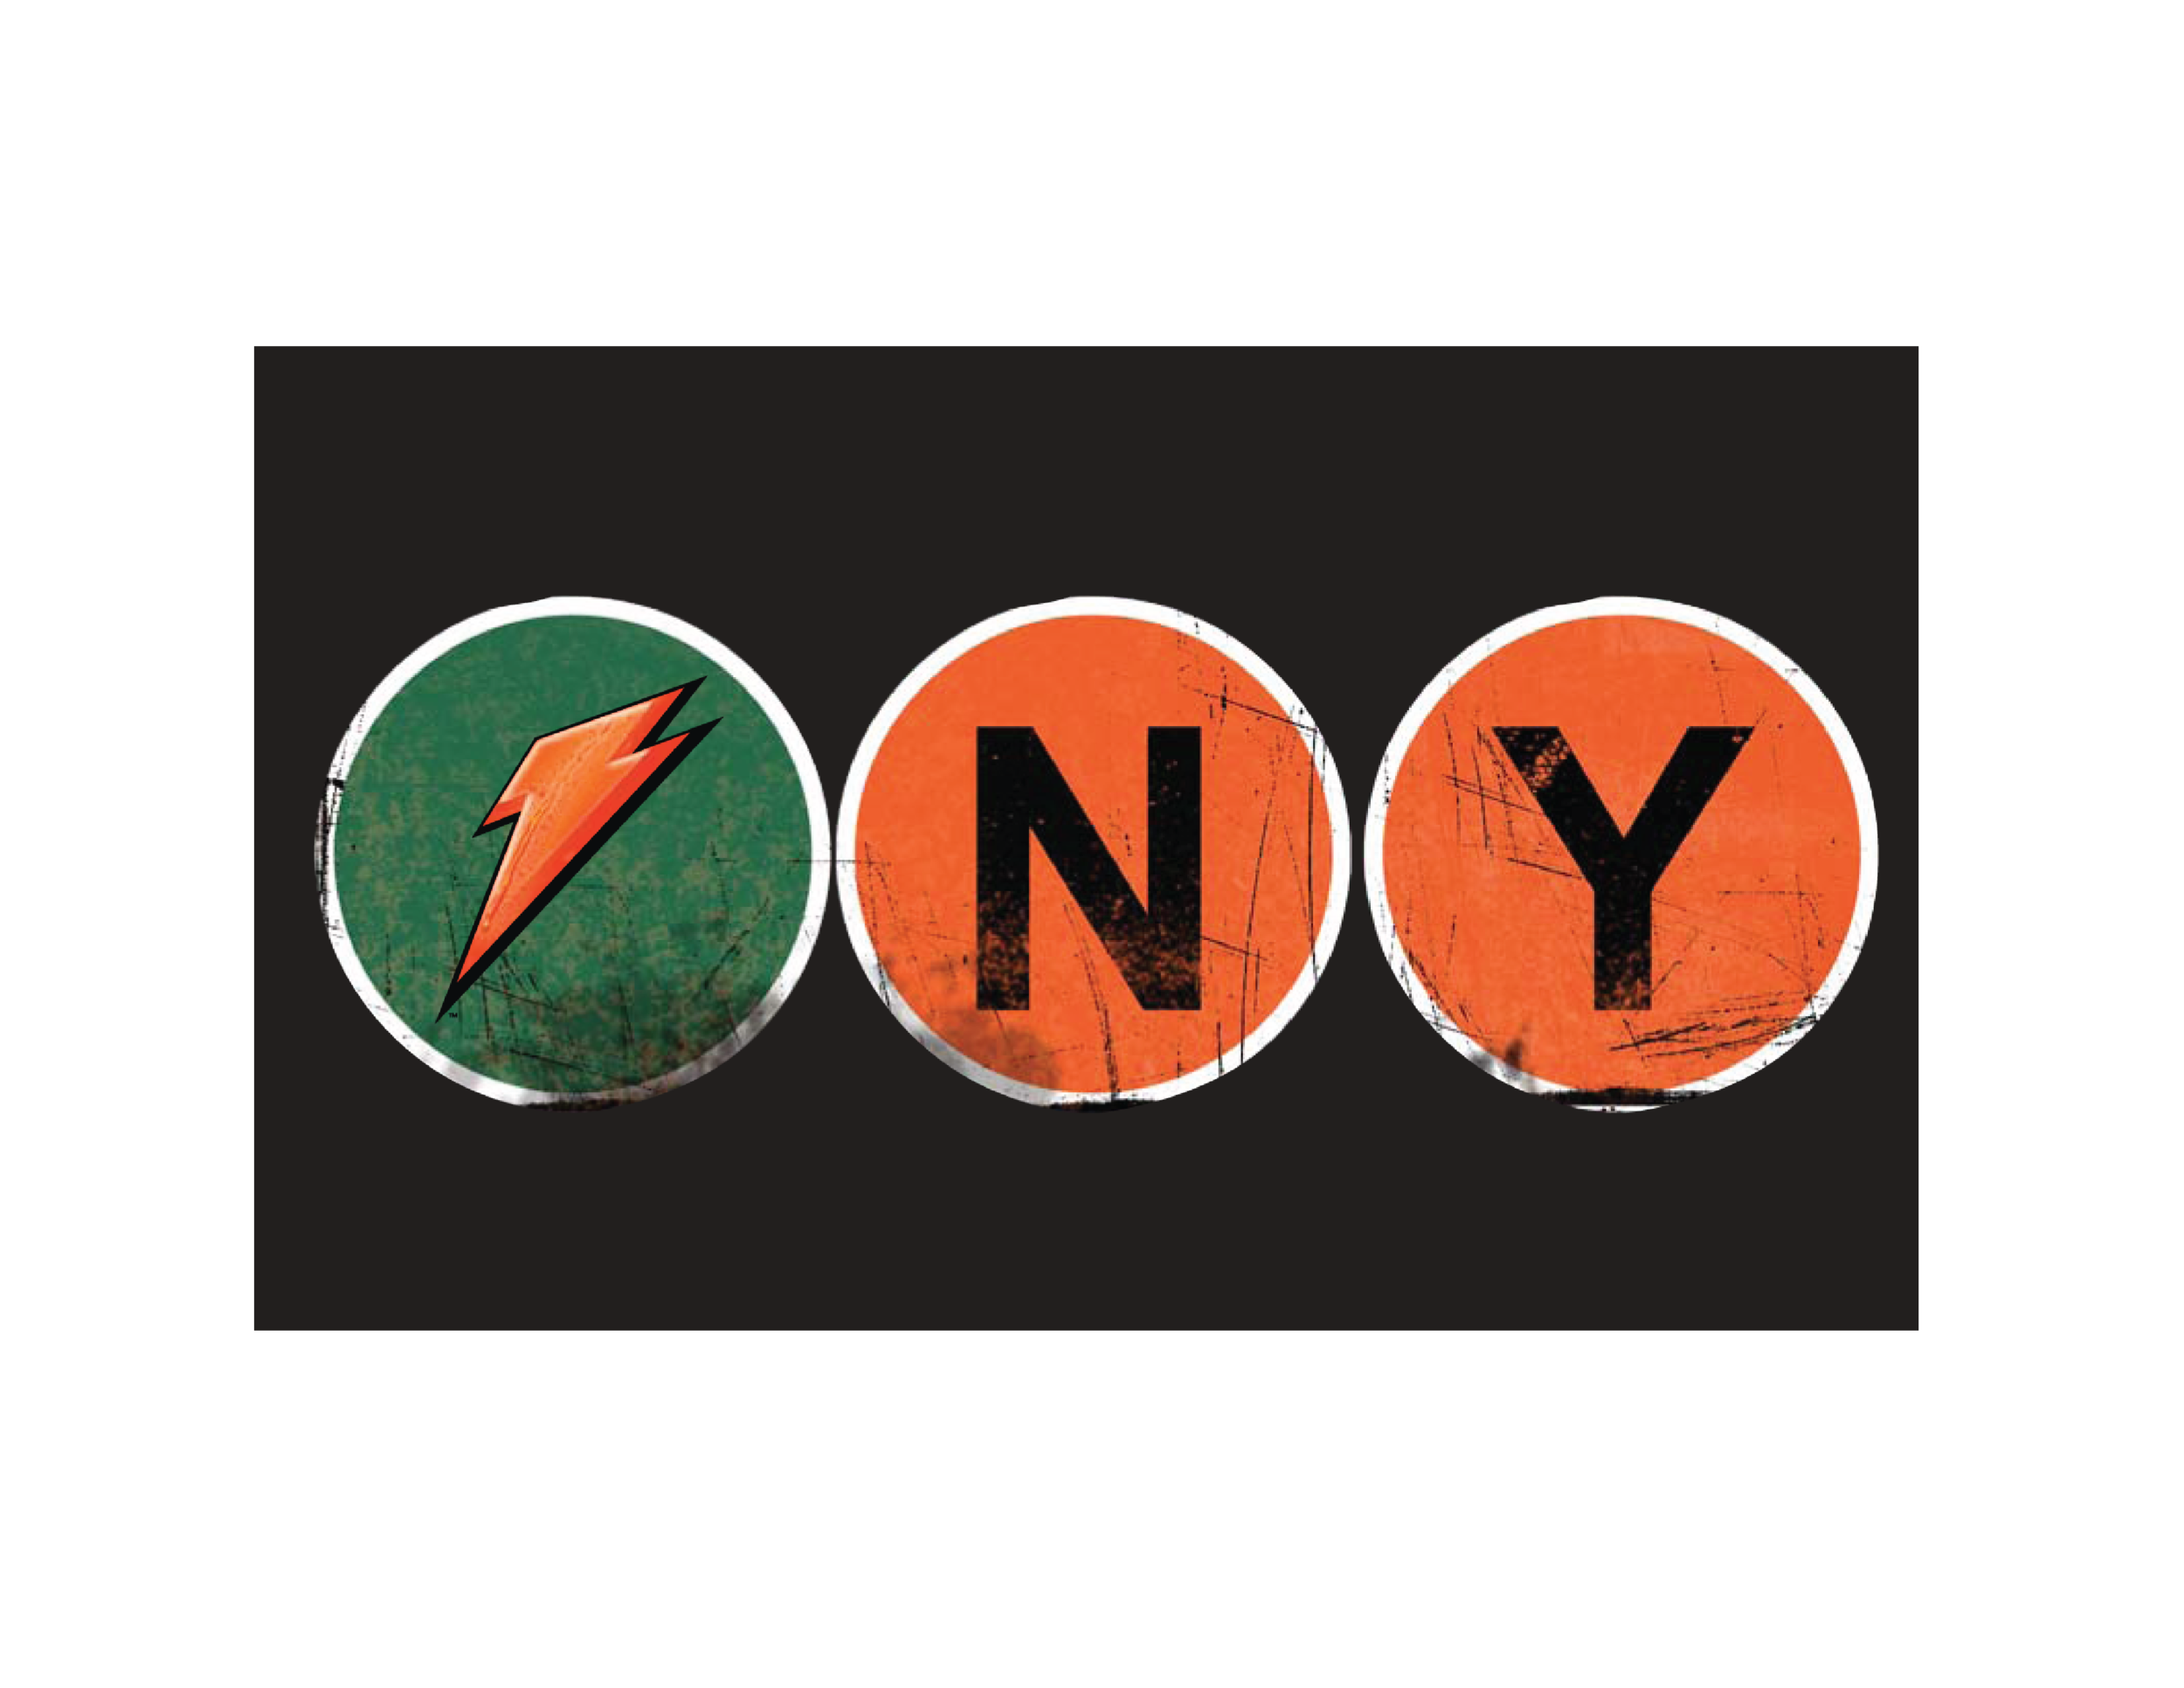 GATORADE DUANE READE NYC MARATHON PROGRAM LOGO